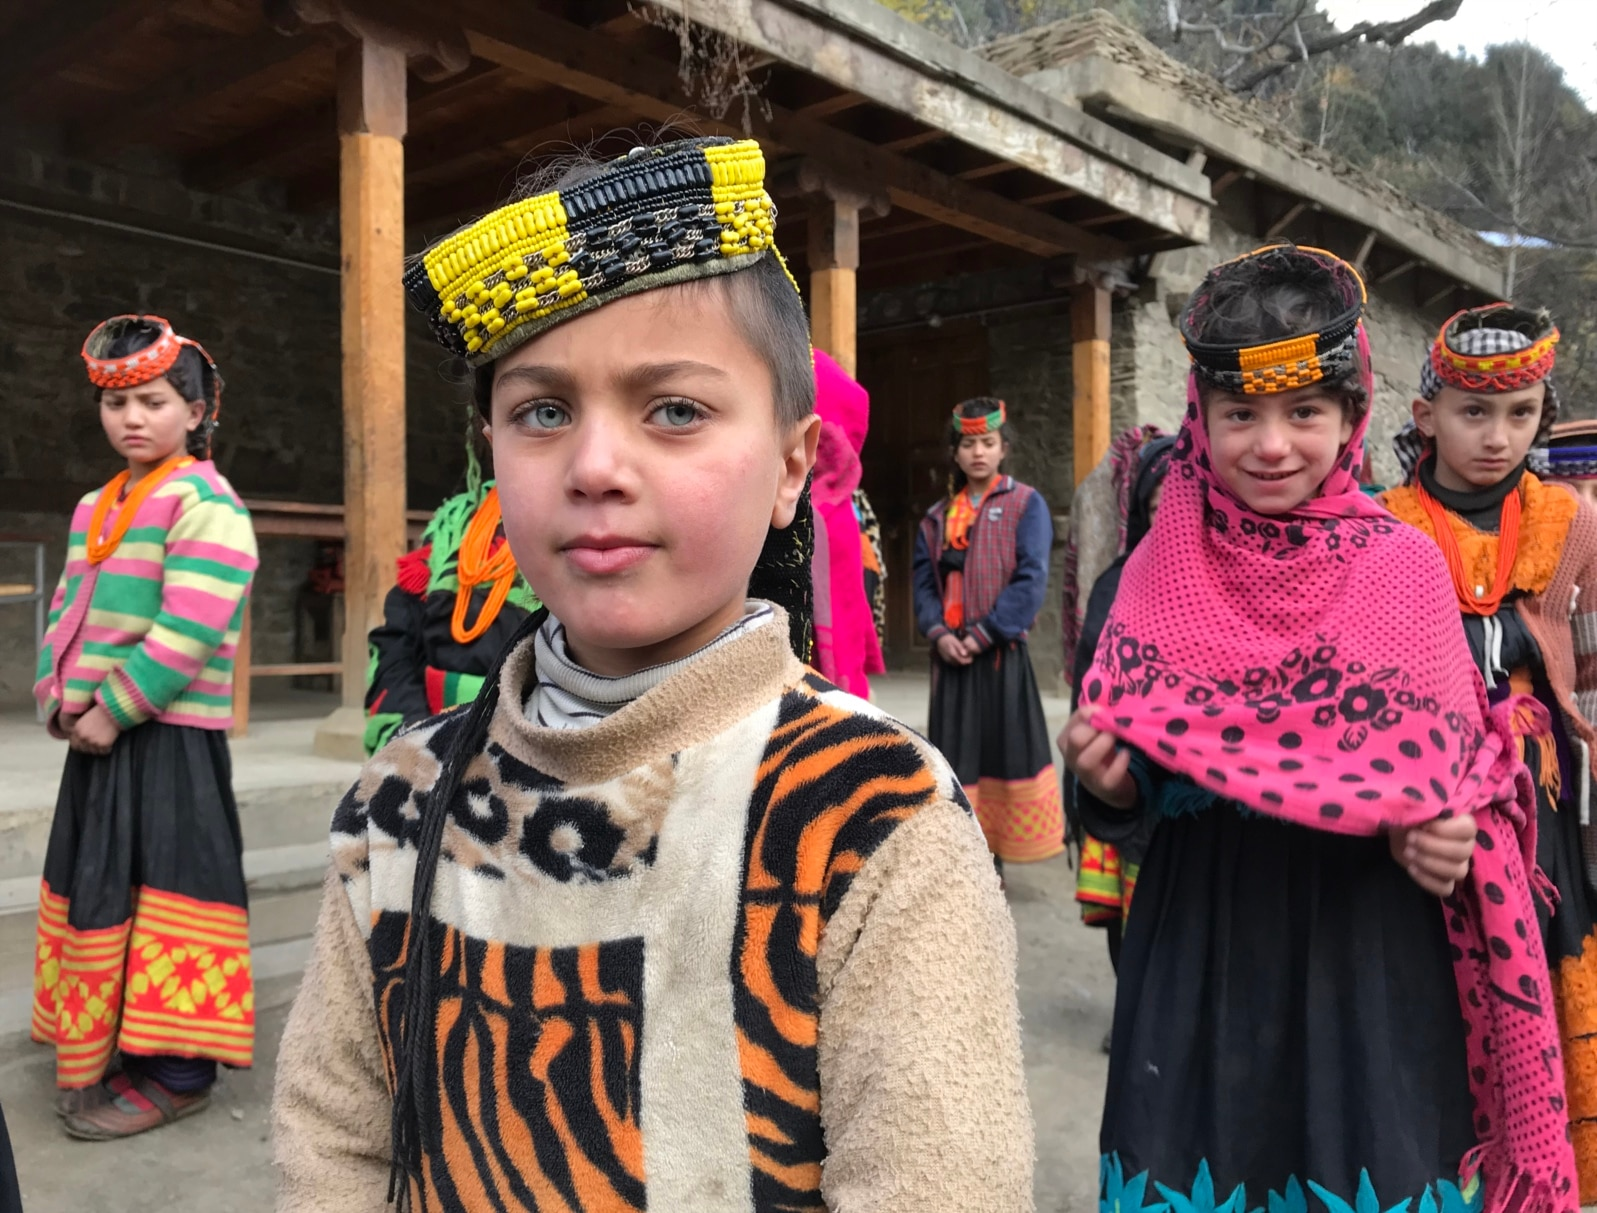 Kalash schoolgirls gathering during morning assembly. A Kalash lawmaker says he hopes lessons in Kalash culture and religion will be introduced in schools, an issue he intends to raise in the provincial legislature.